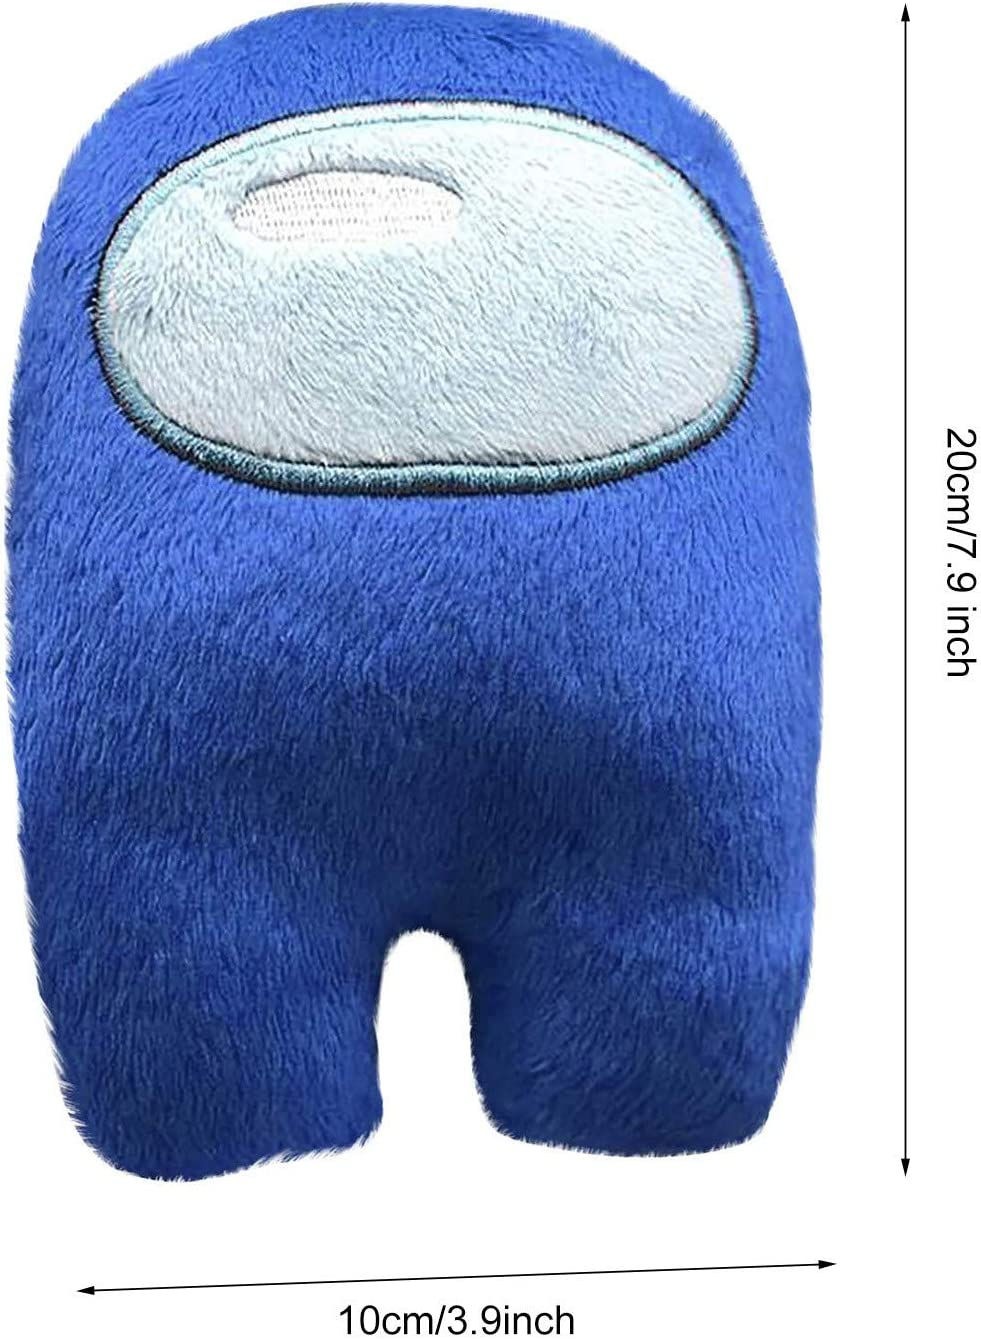 hgfdh 1pc Cute Plush Toy Among Us Doll Soft Stuffed Animal Doll for Kids Adults for Birthday Gift 10cm